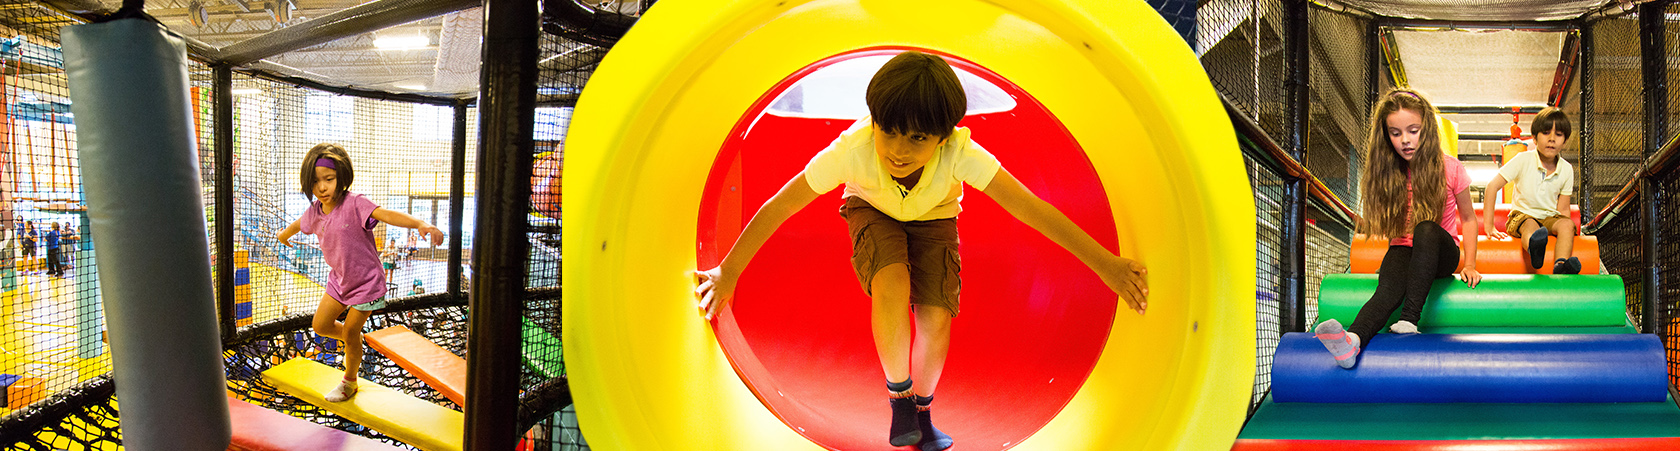 Funtopia Family Entertainment Glenview, Indoor Sports Kids